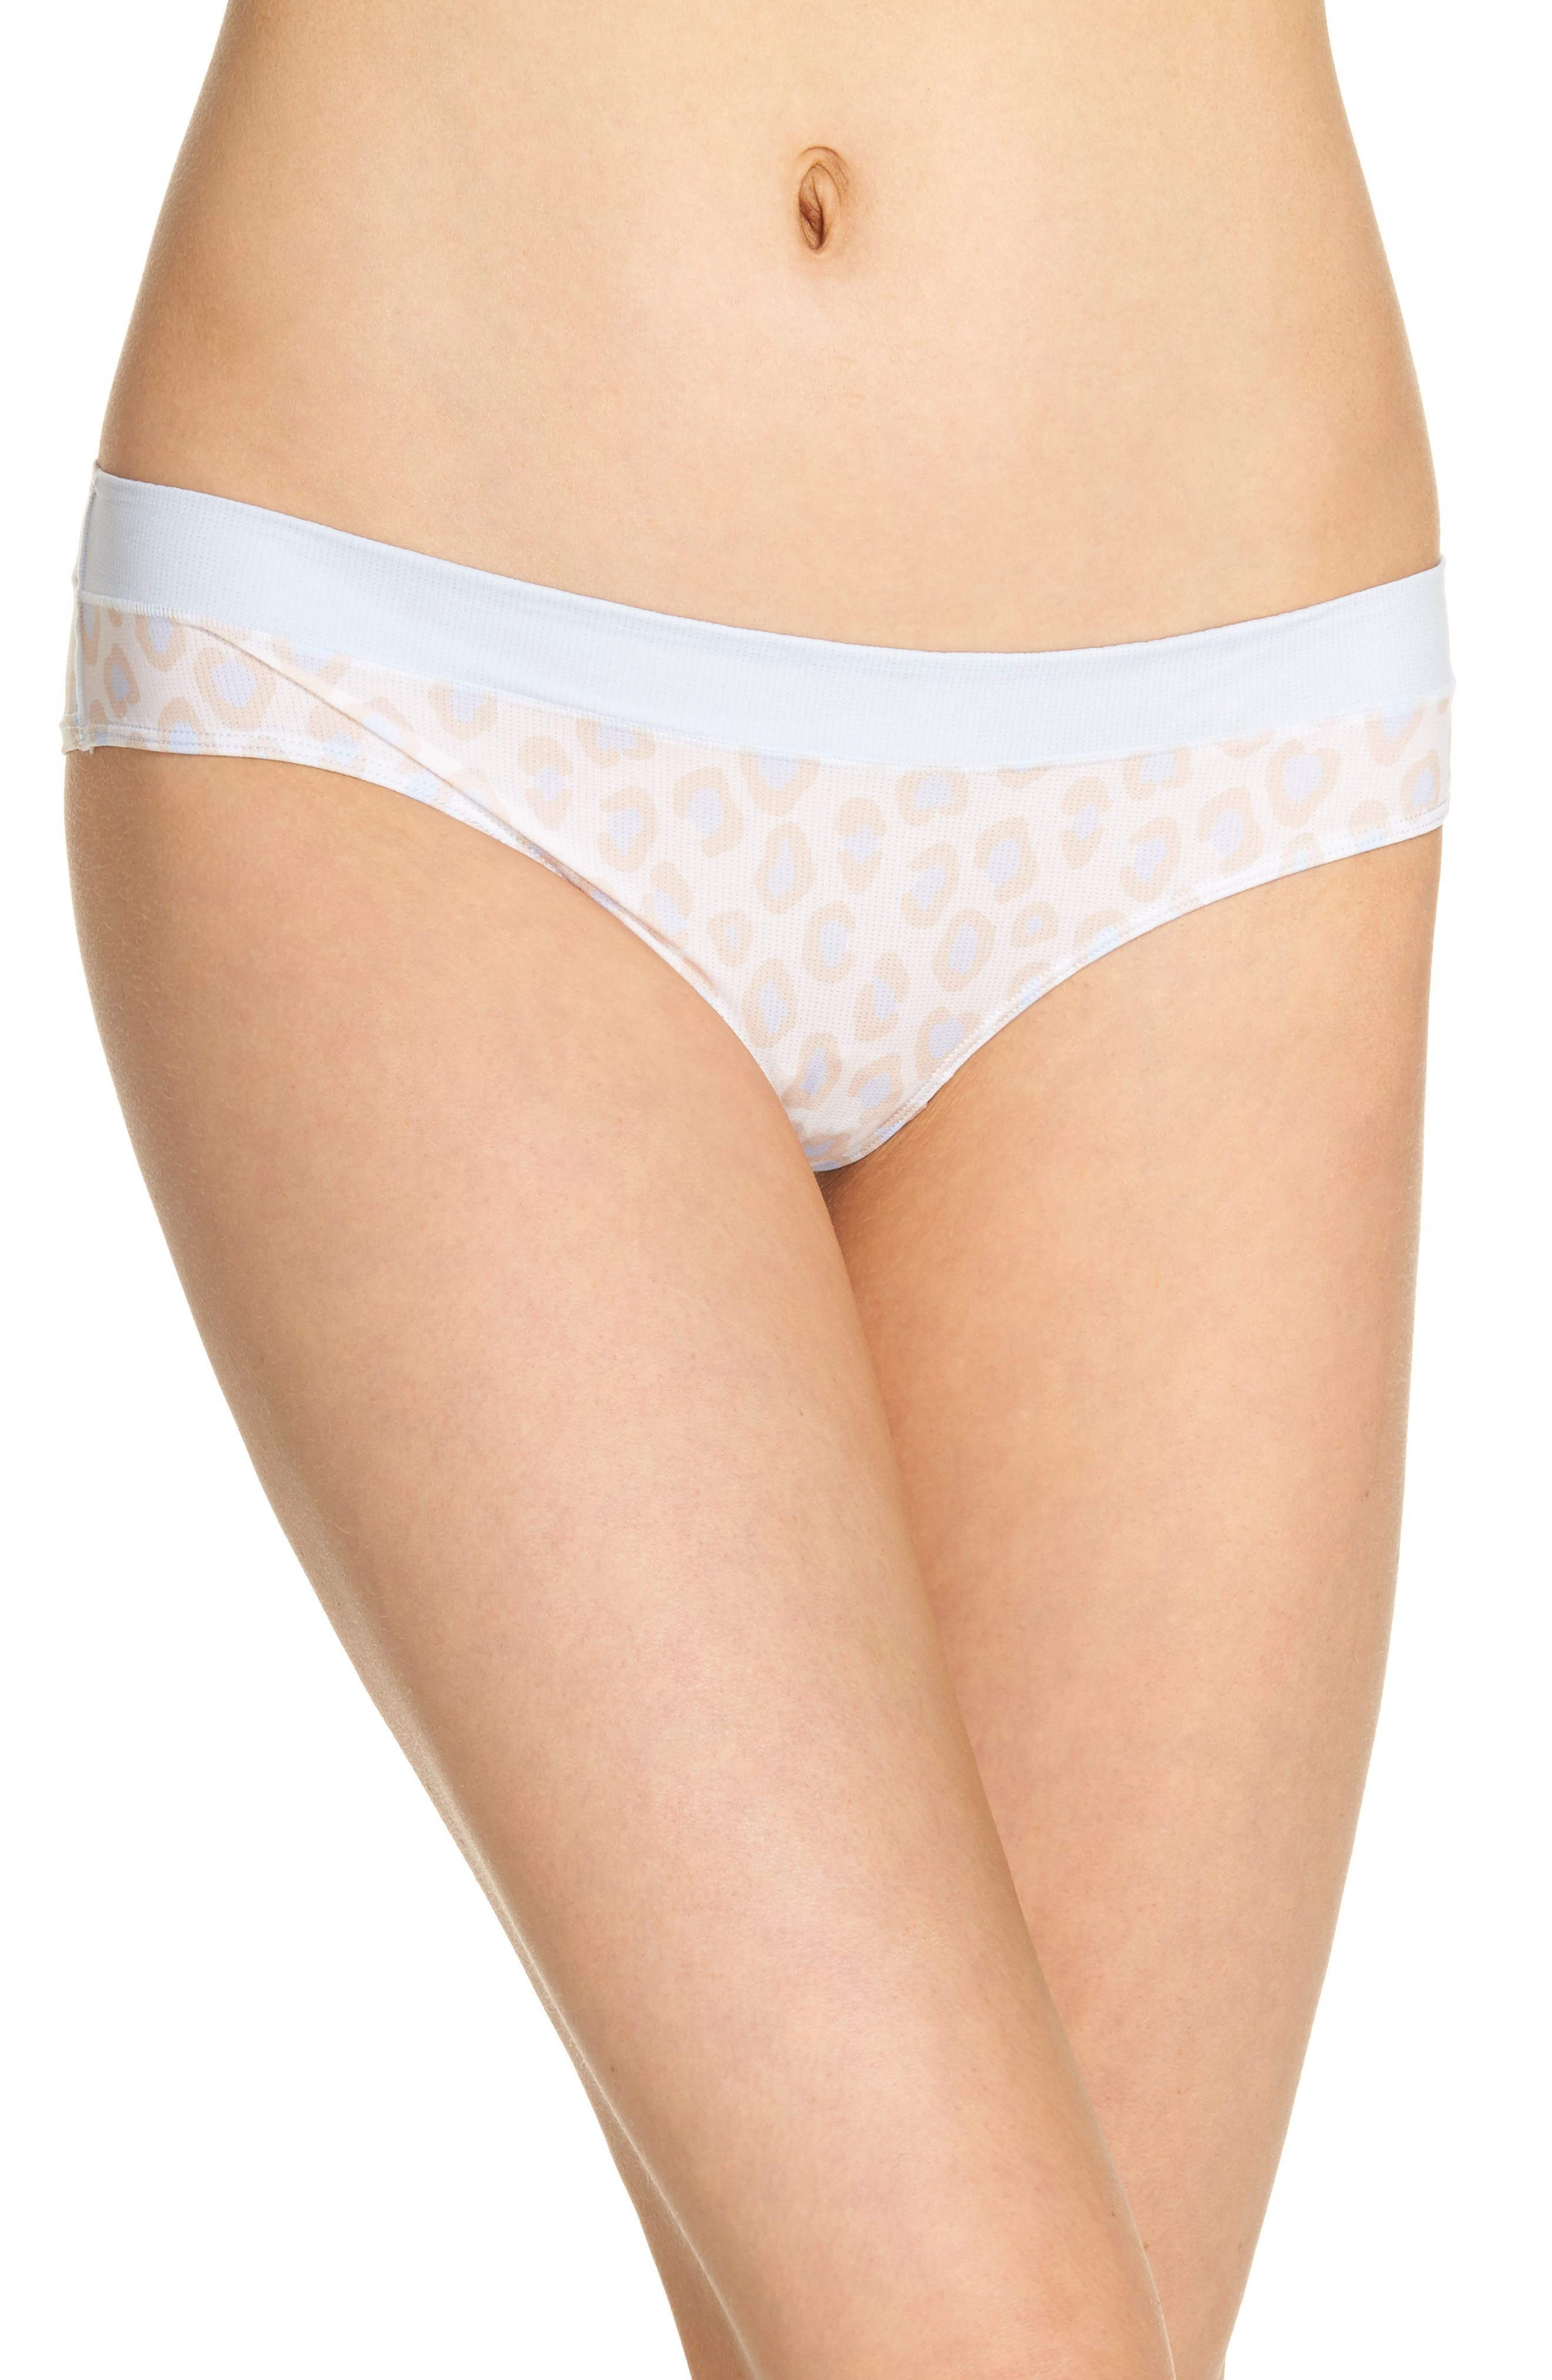 Follow Me Feline Cheeky Hipster Panties,                             Main thumbnail 1, color,                             420